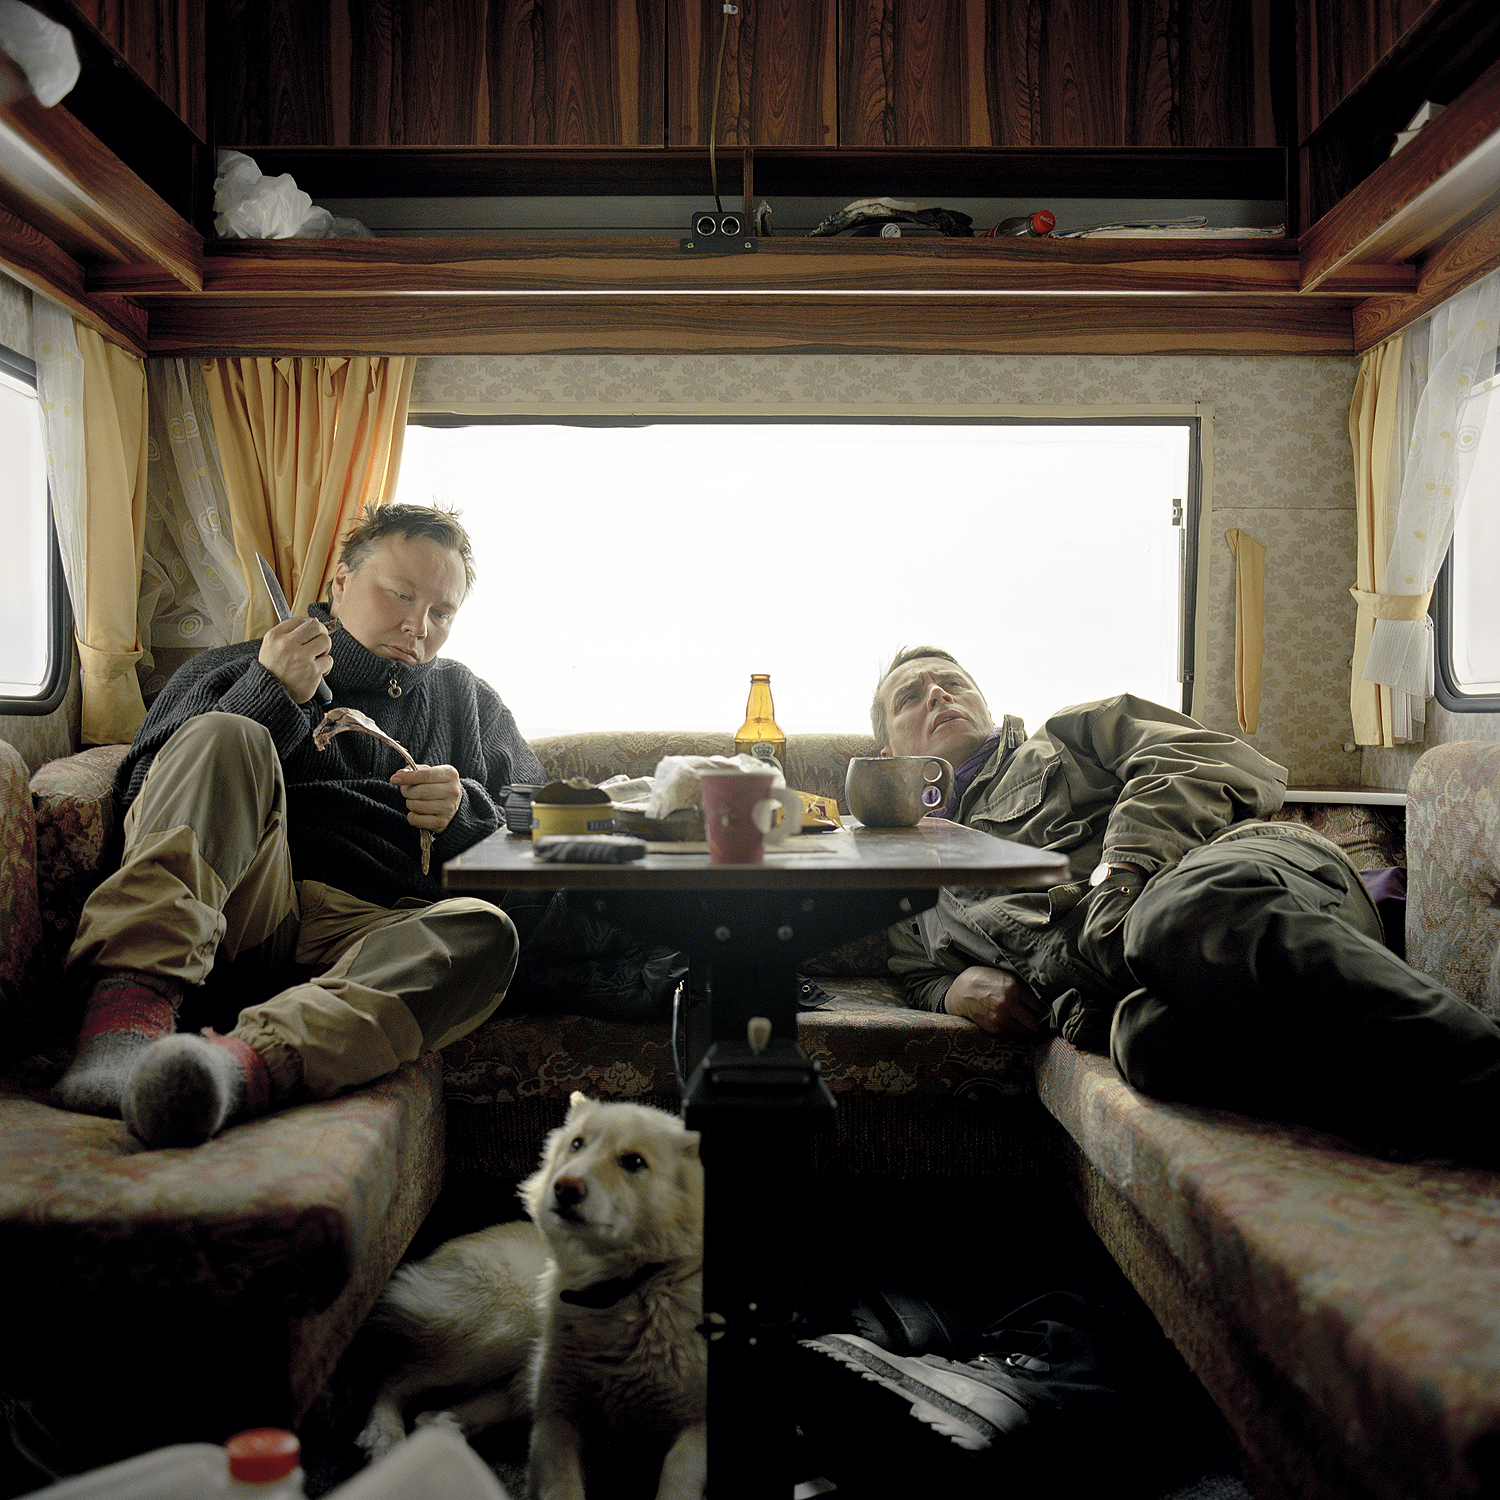 Relaxing in the trailer, 2005